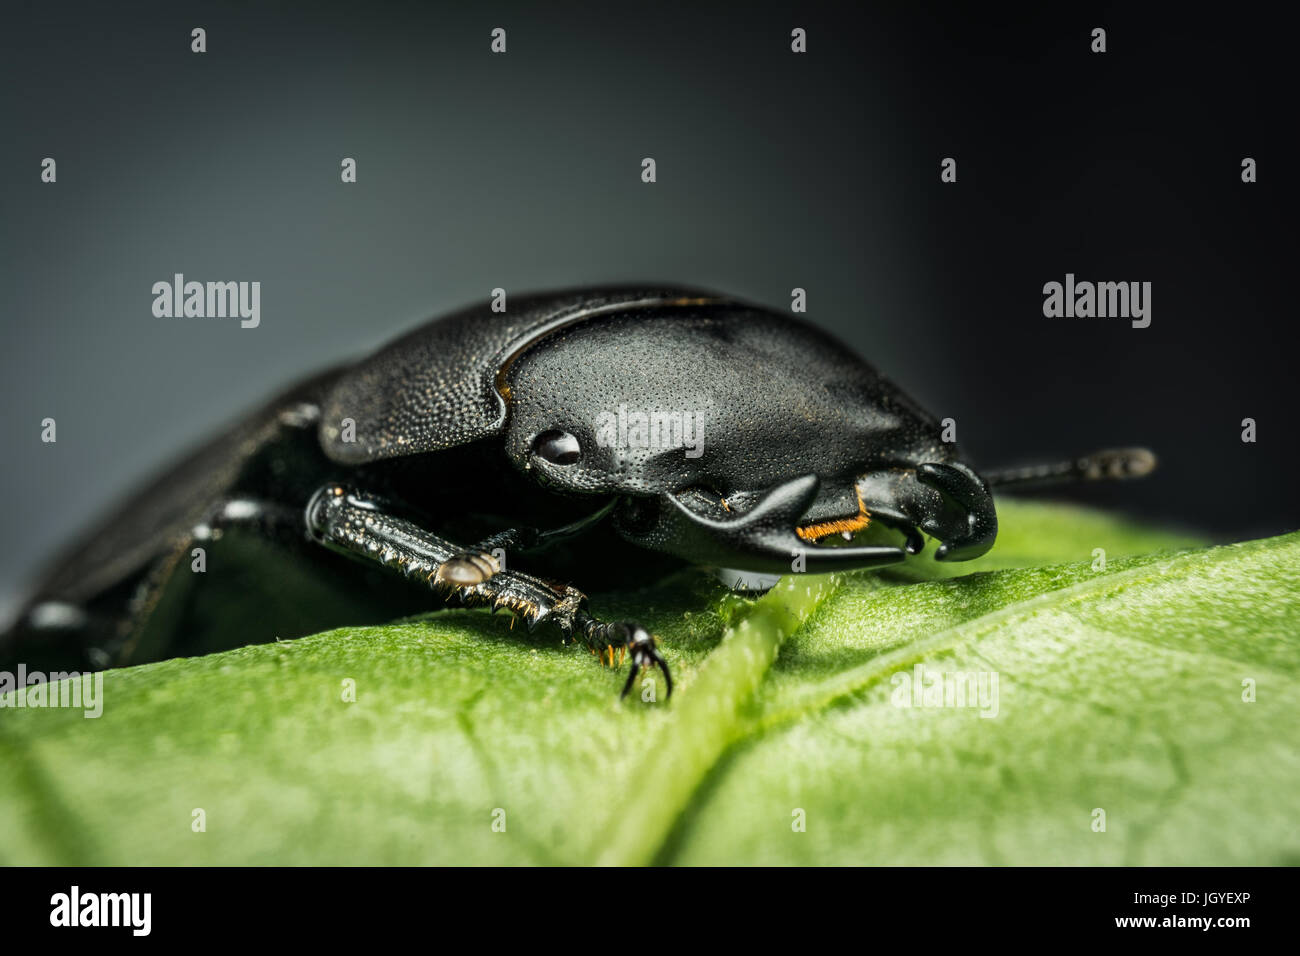 Young stag beetle (Lucanus cervus) on green leaf - Stock Image